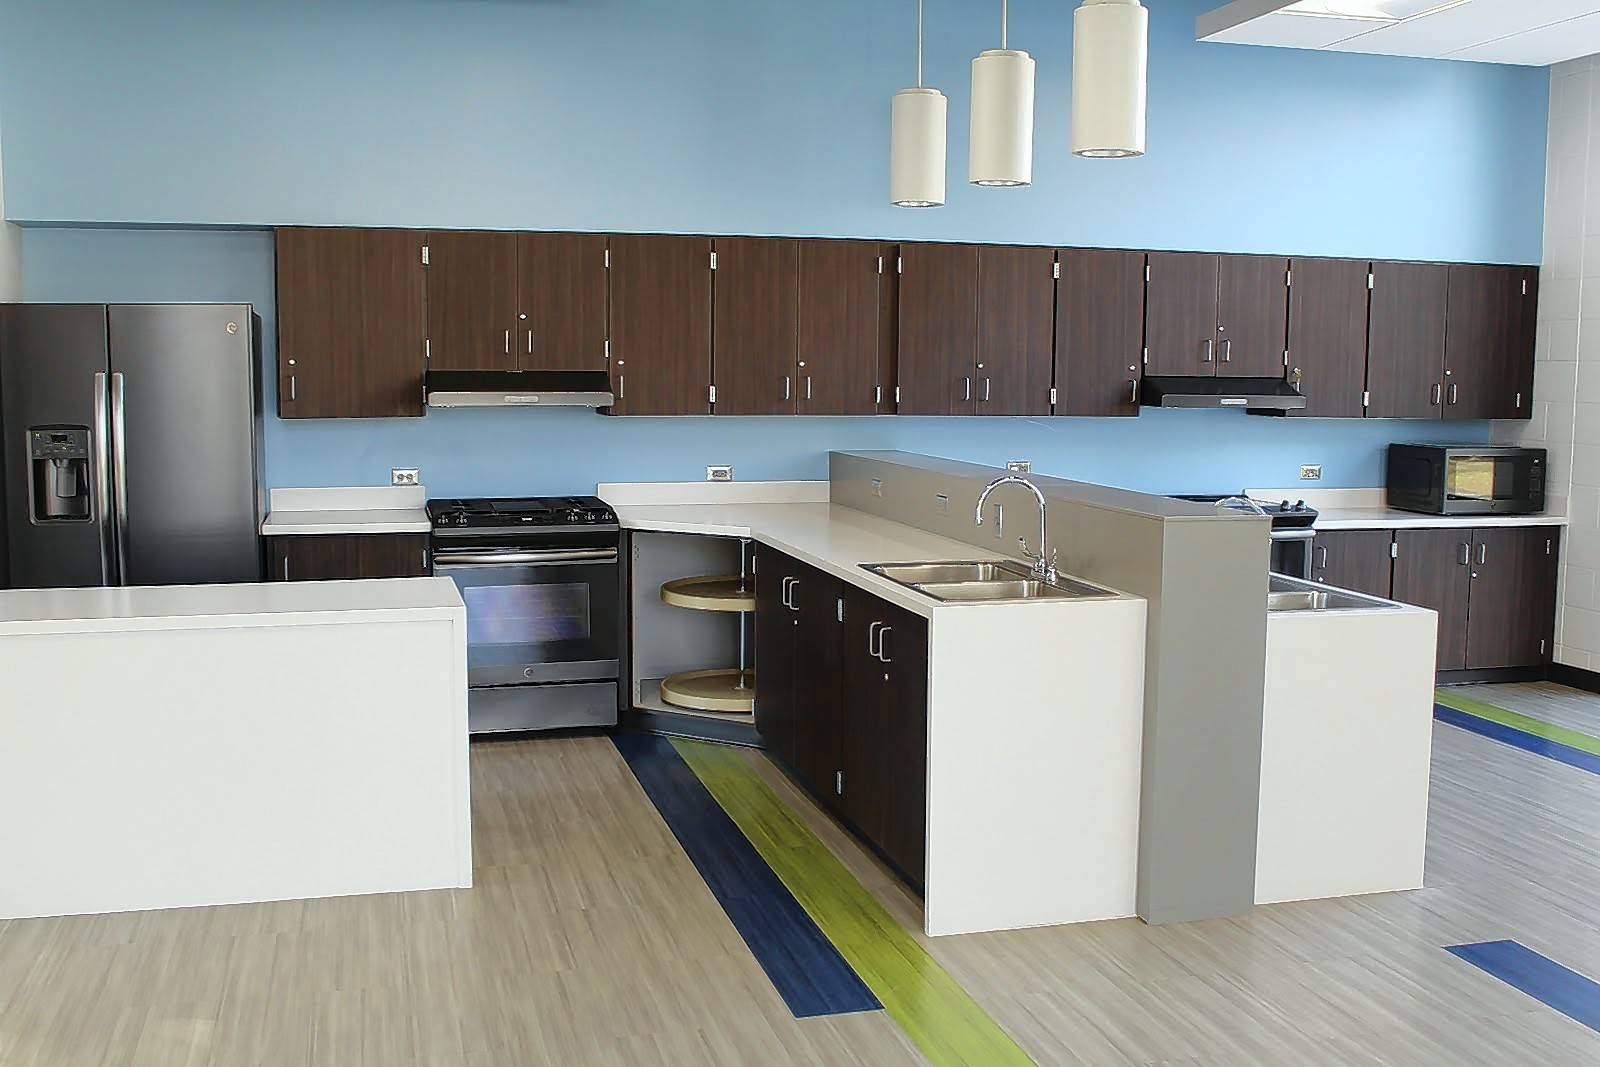 A new Life Skills Development Center at Bernotas Middle School in Crystal Lake features a full kitchen and bathroom, washer/dryer, flexible area for group activities, private office, and patio/rain garden and is fully ADA-accessible.